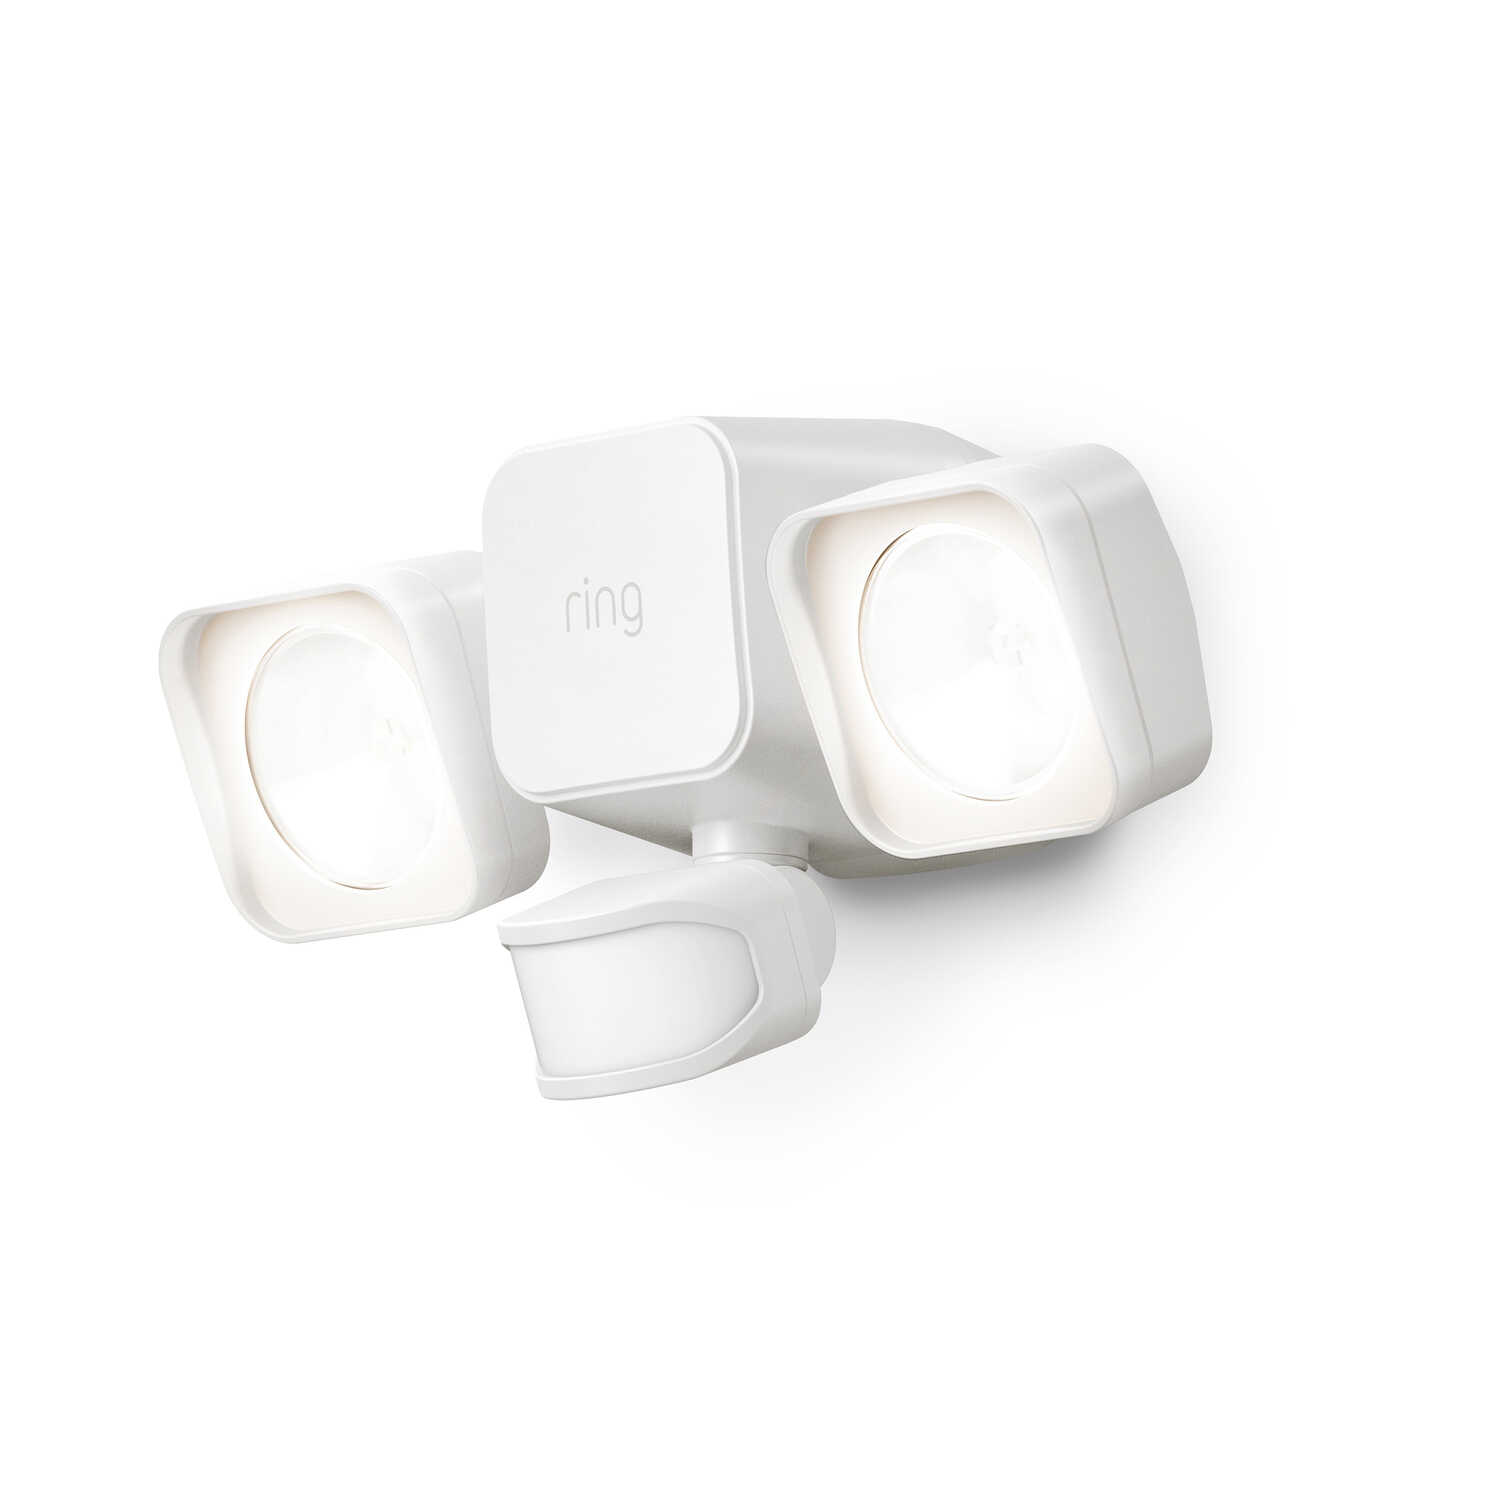 Ring  Motion-Sensing  Battery Powered  LED  White  Floodlight